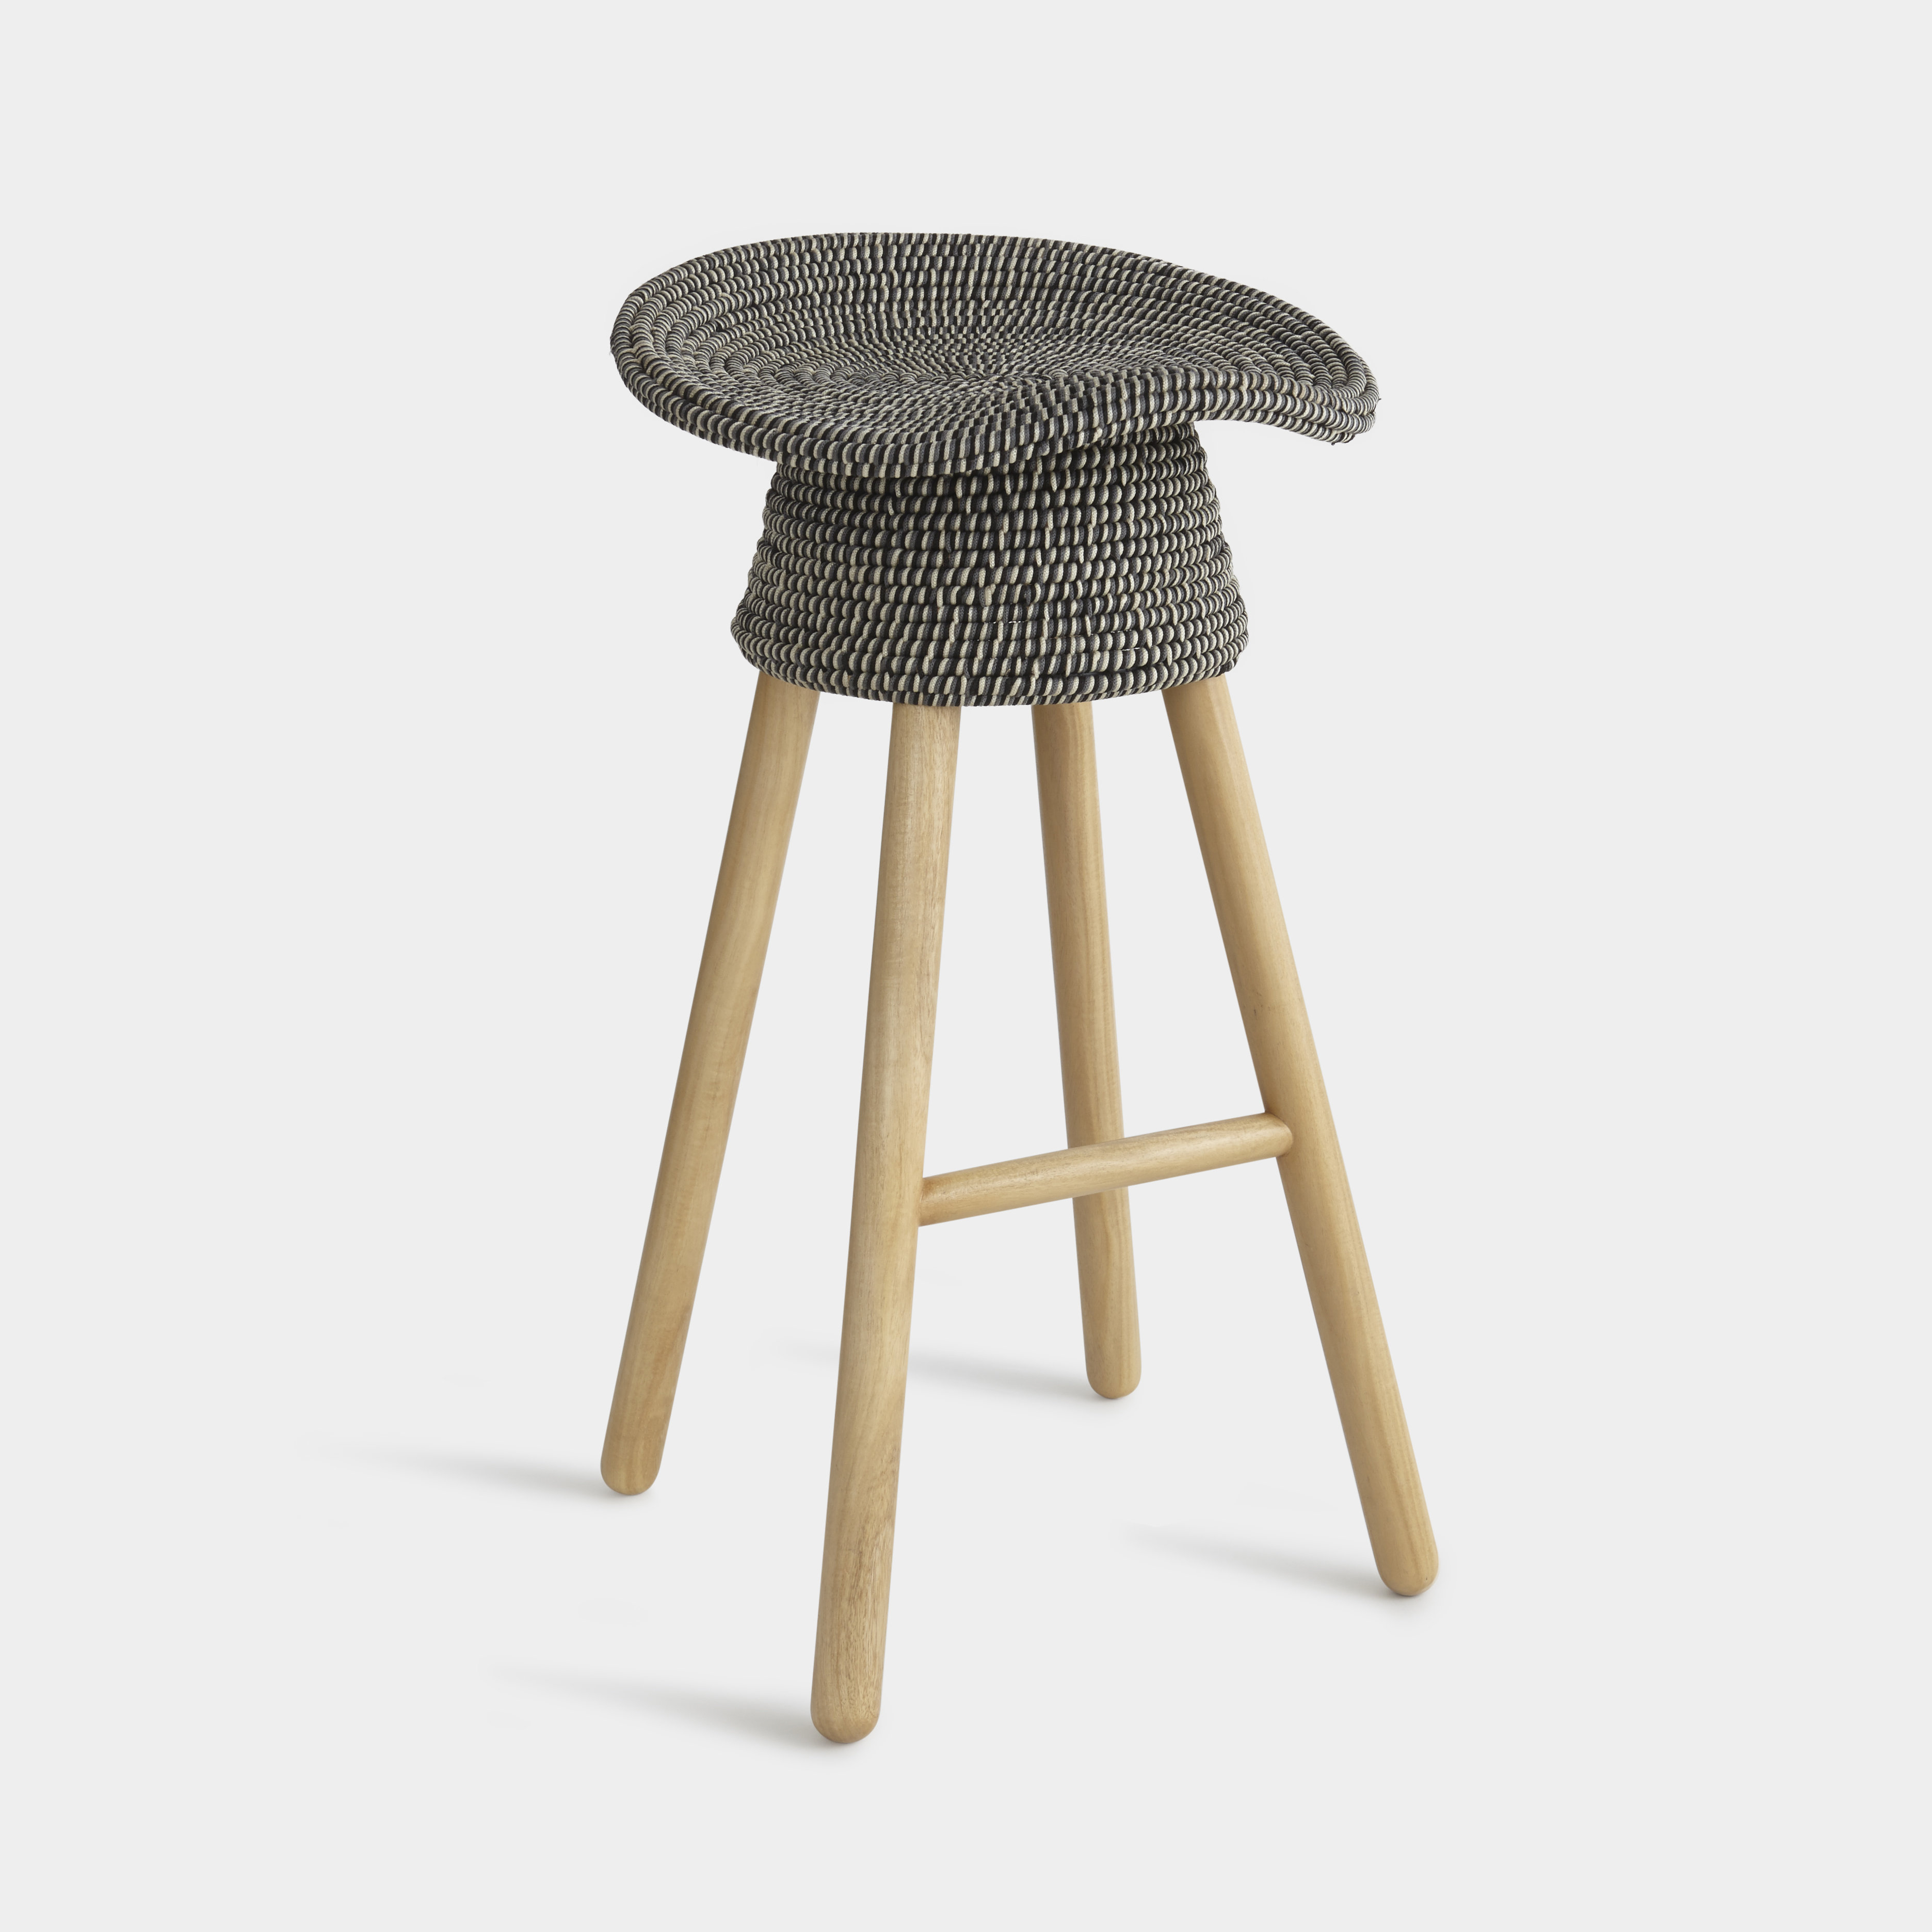 brownsville accent stool coiled signy drum table quickview mid century kitchen square counter height dining set whole patio furniture unfinished legs thin low tables for living